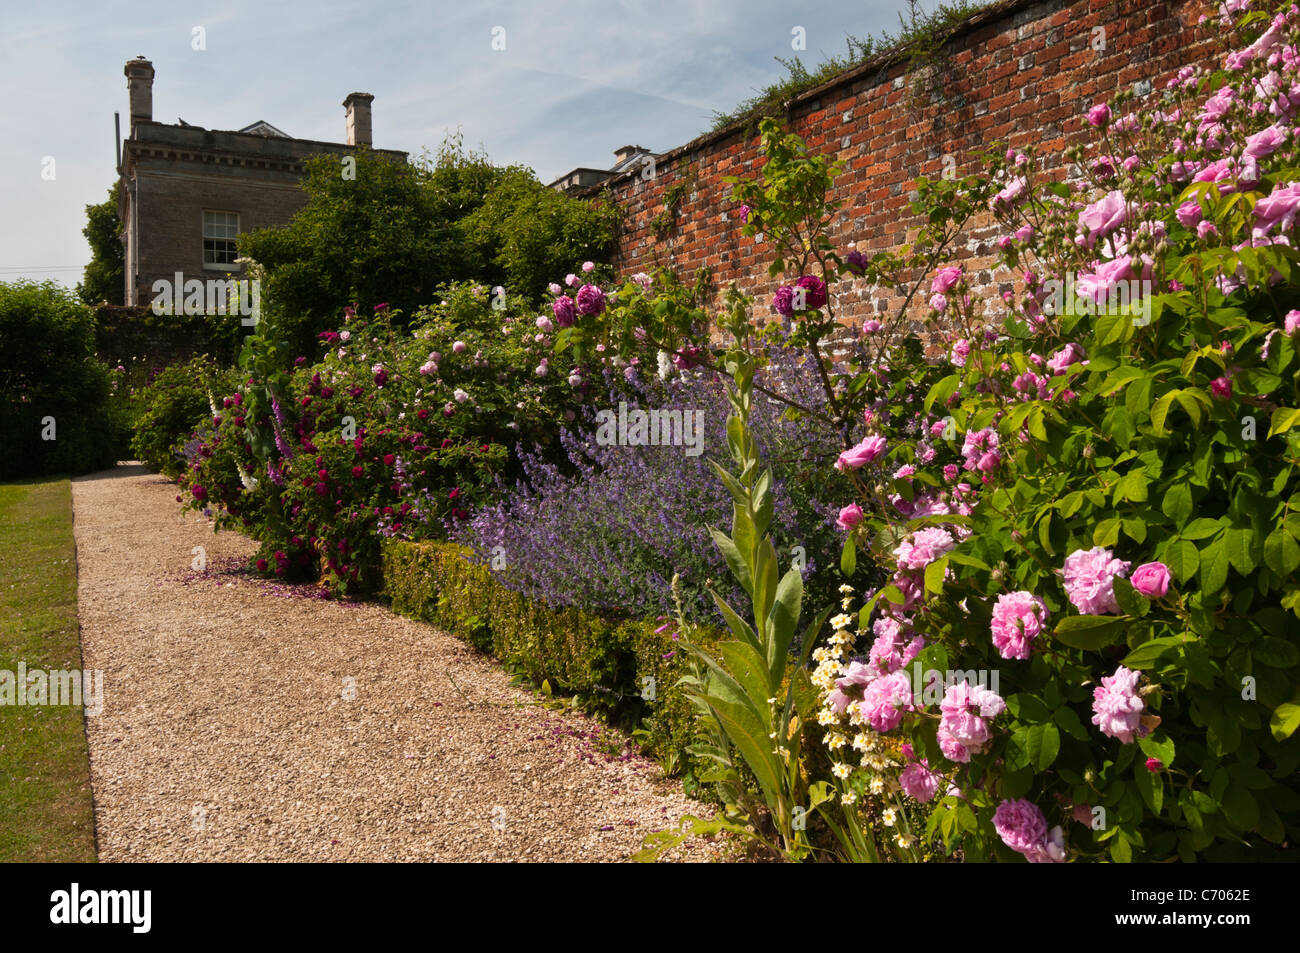 A glimpse of Rousham House seen from within the walled garden beside a colourful herbaceous border, Oxfordshire, - Stock Image